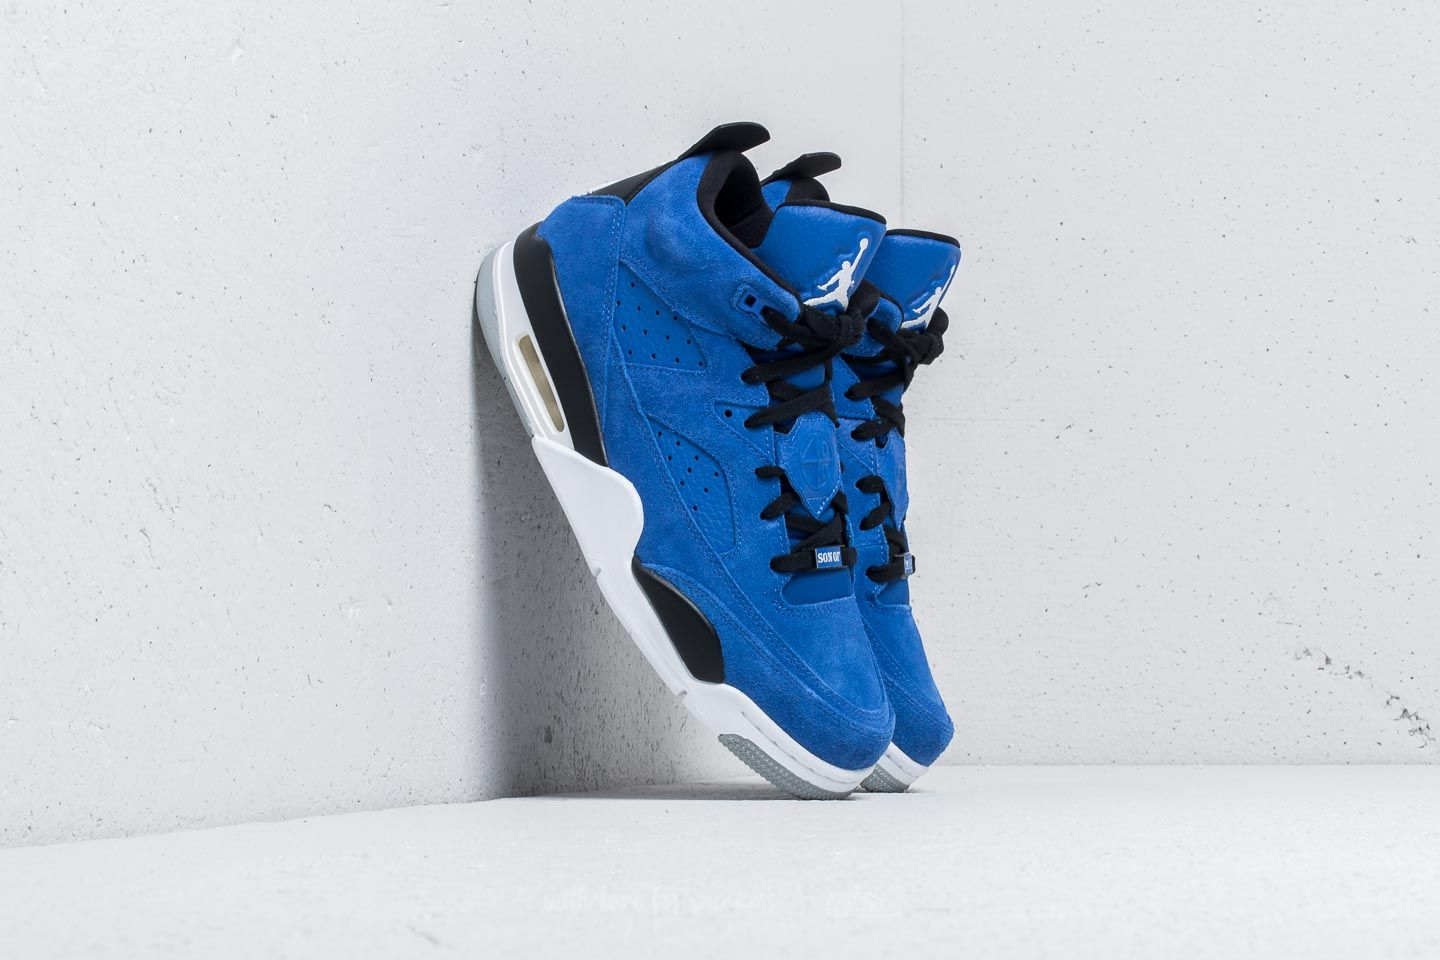 lowest price 51981 bcda4 Jordan Son Of Low Hyper Royal/ White-Black | Footshop